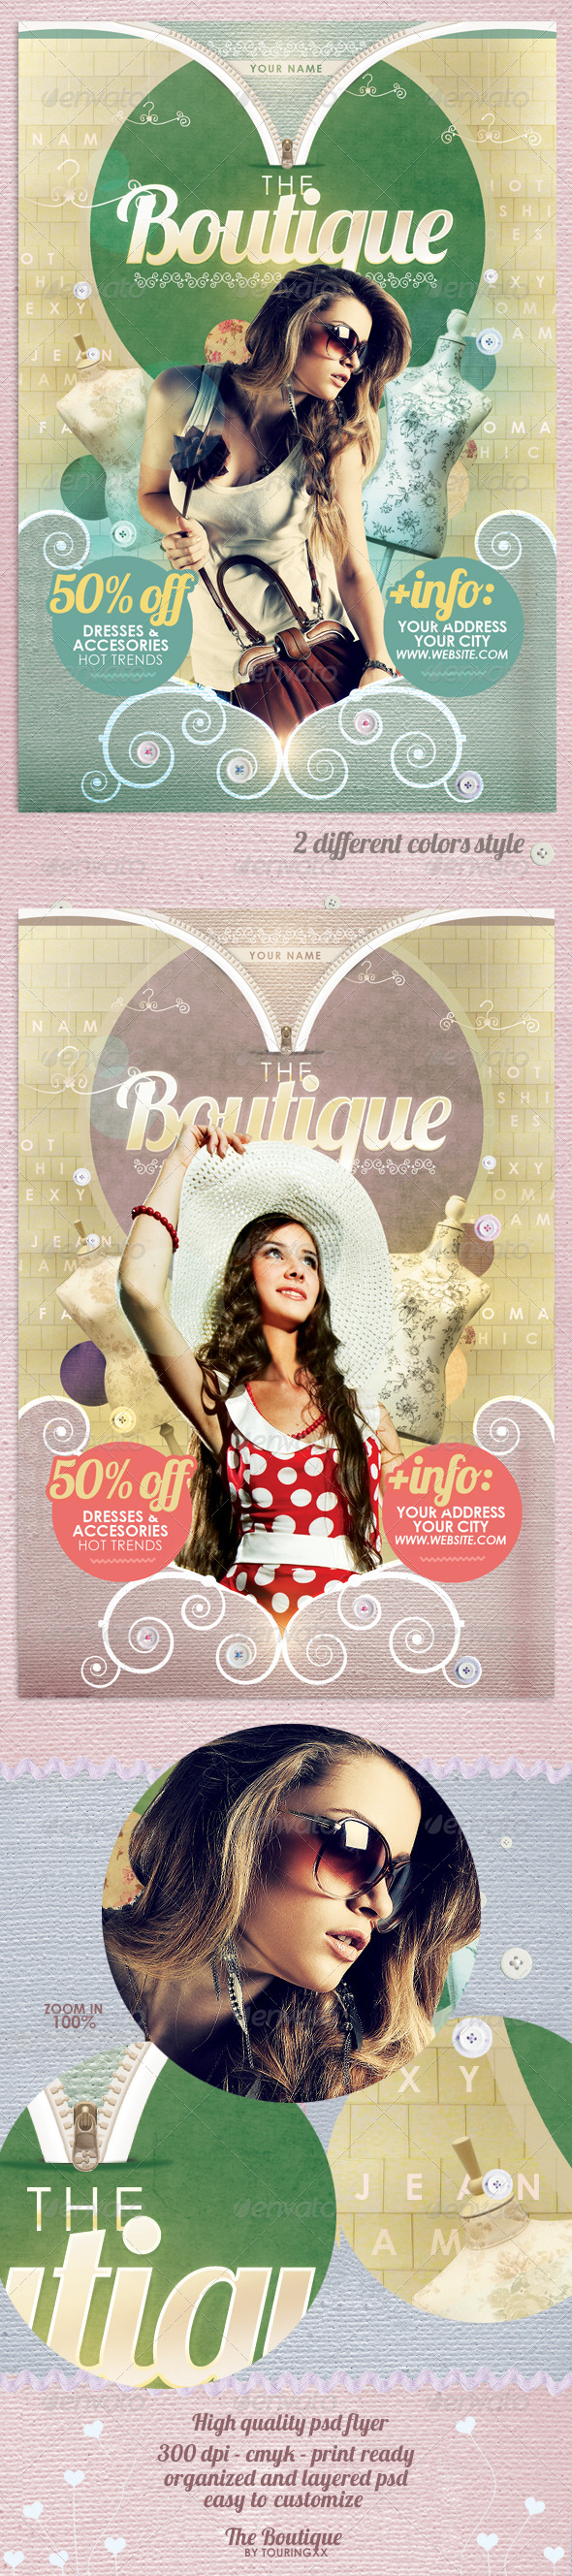 The Boutique Flyer Template - Commerce Flyers